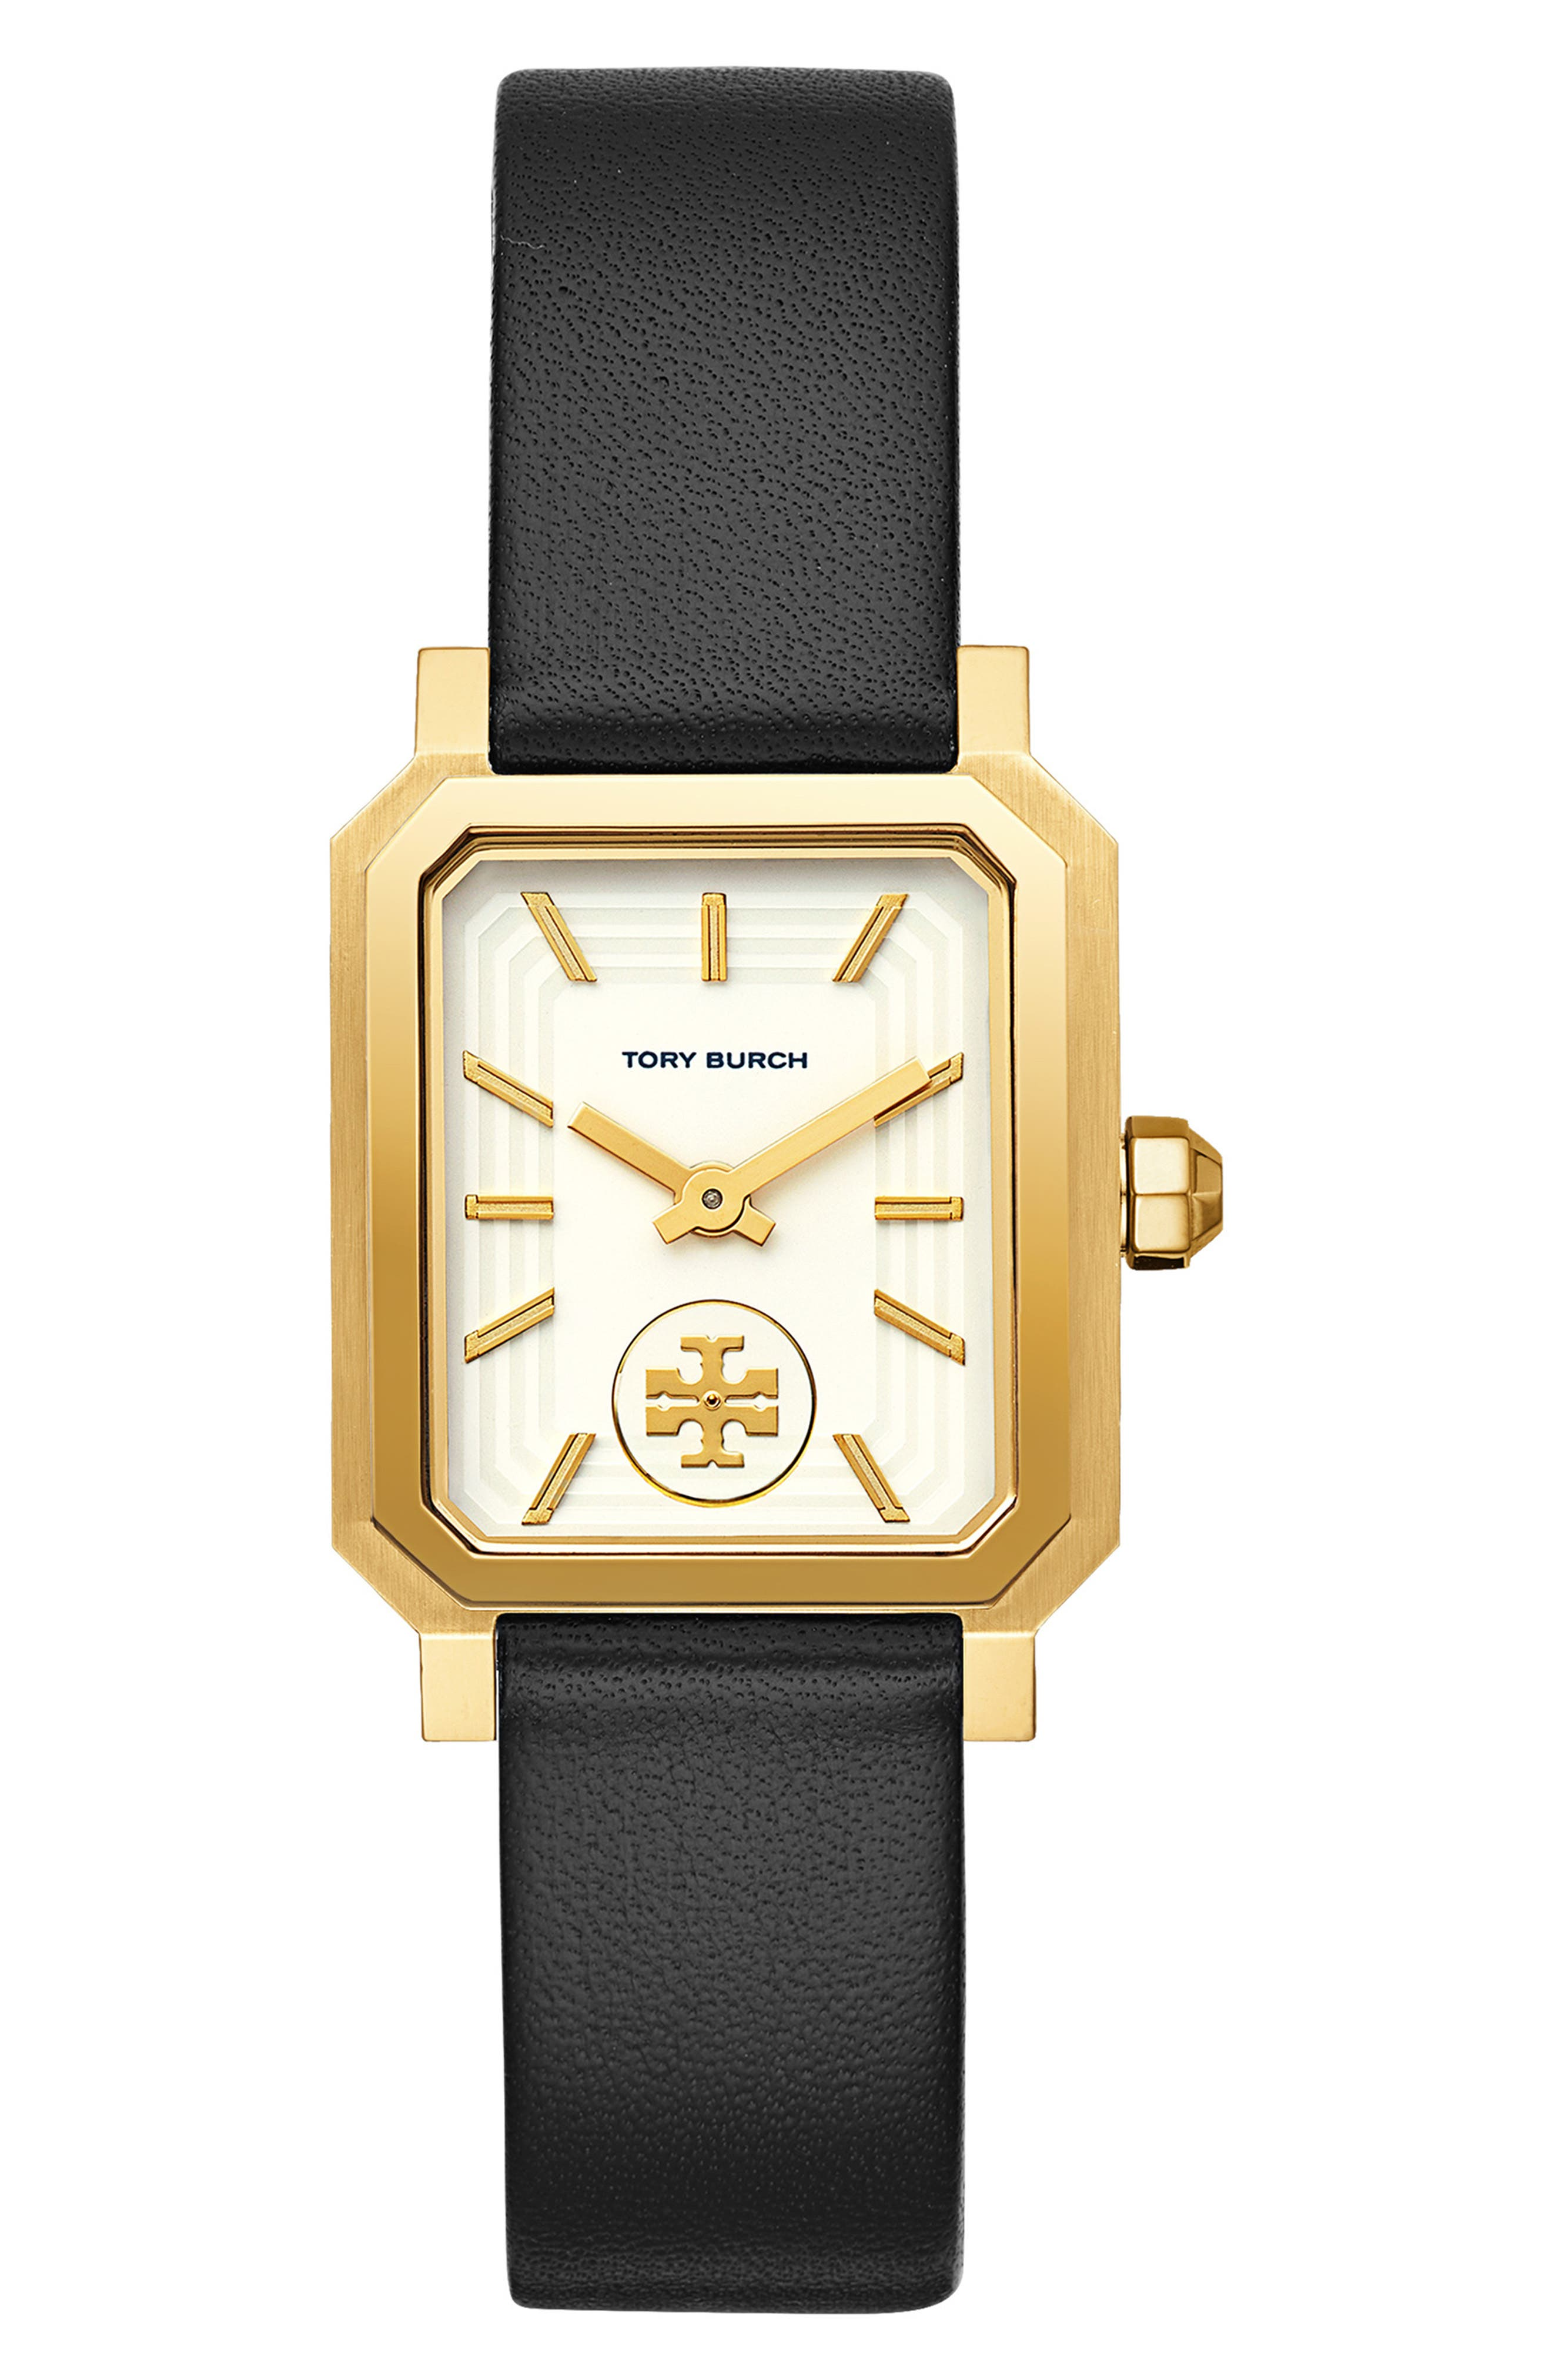 TORY BURCH, Robinson Leather Strap Watch, 27mm x 29mm, Main thumbnail 1, color, BLACK/ WHITE/ GOLD